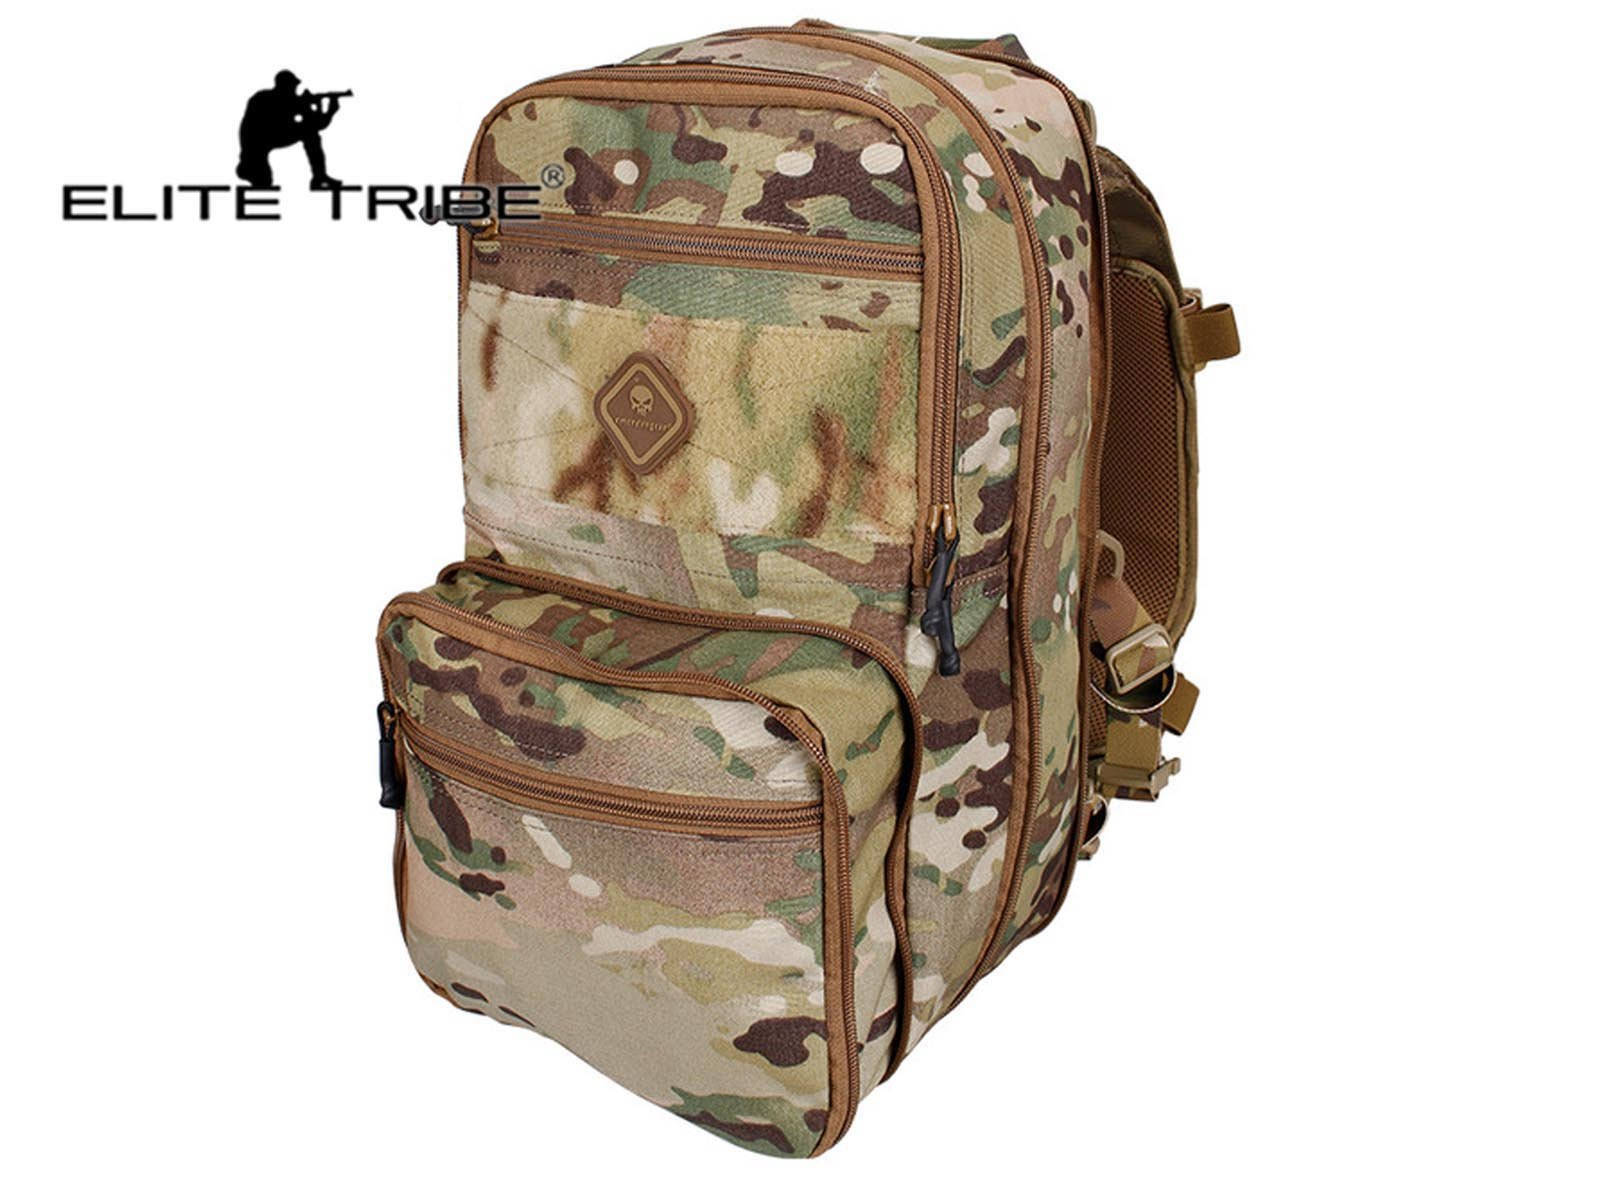 Elite Tribe Tactical Backpack Hydration Backpack Molle Pouch Military Multipurpose Travel Multi-Purpose Shoulder Bag